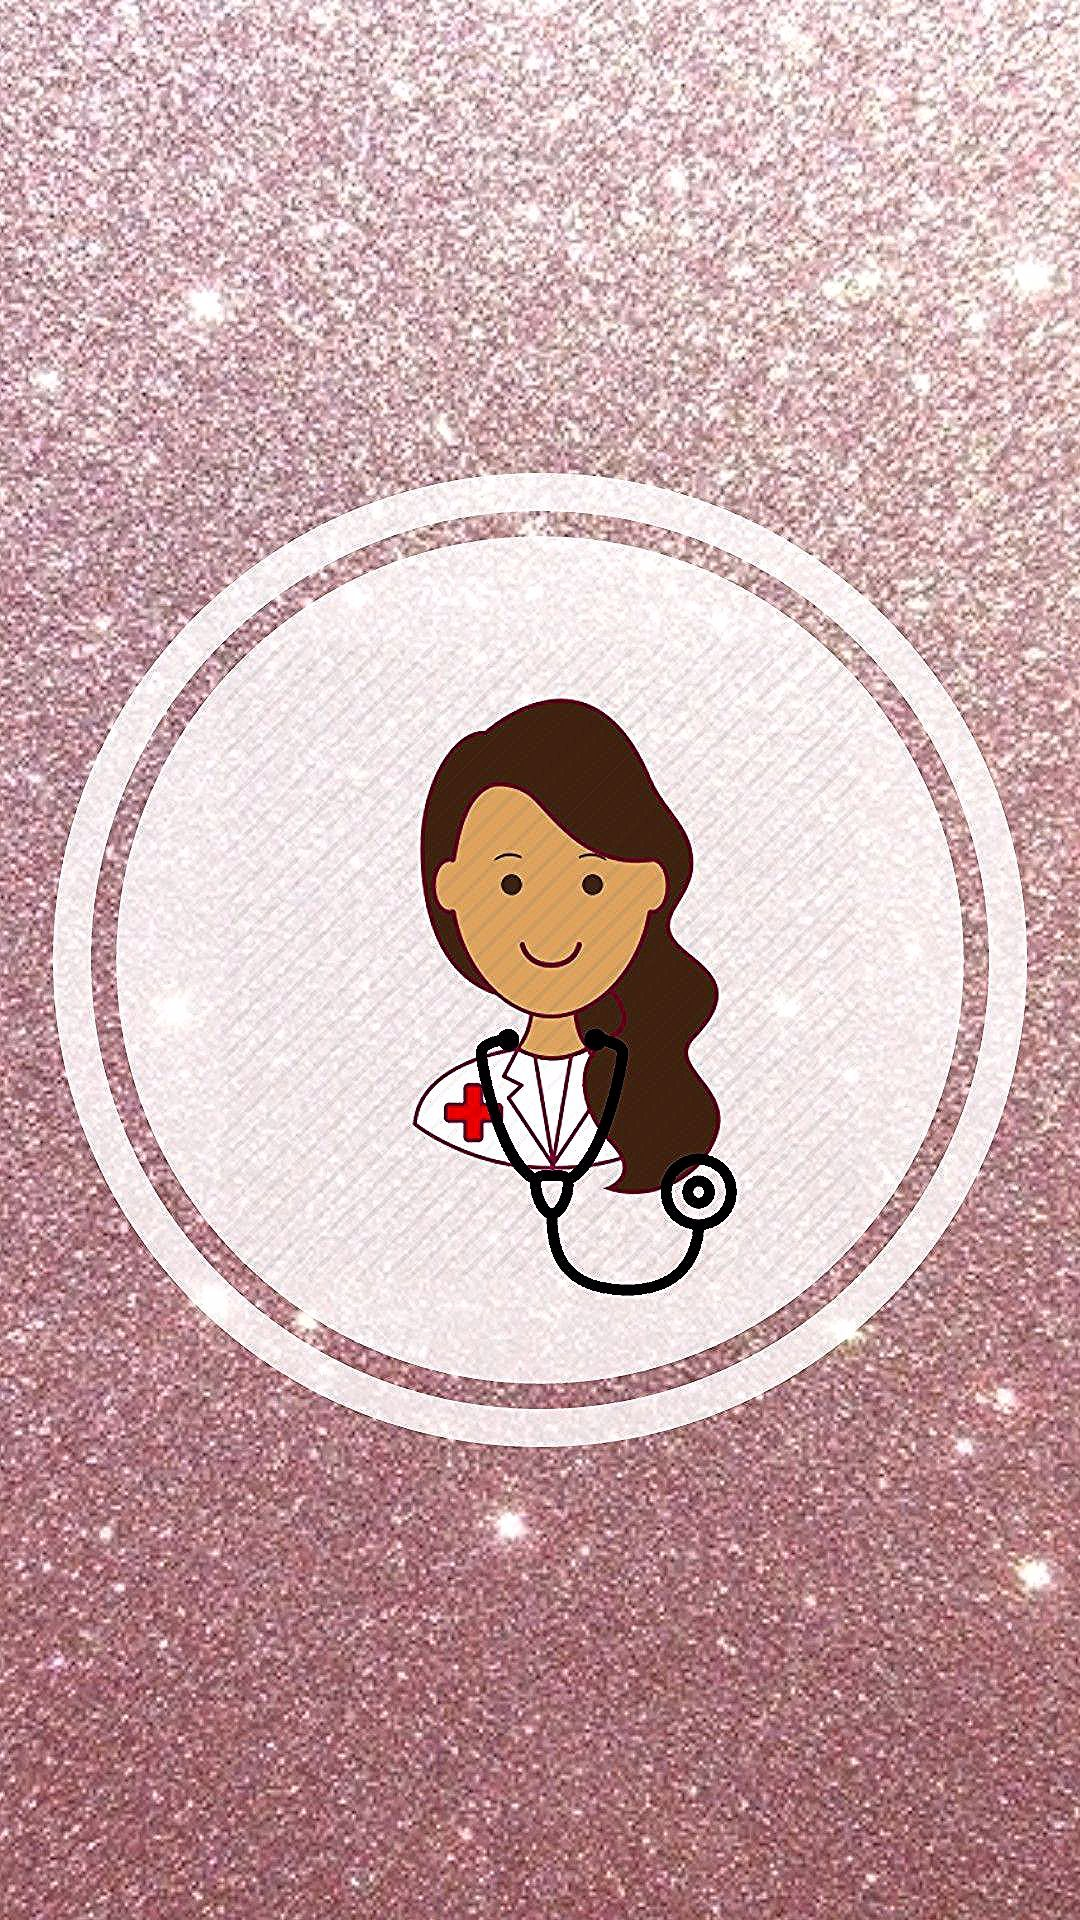 Pin by Milesia rodriguez on nurse life in 2020 Medical